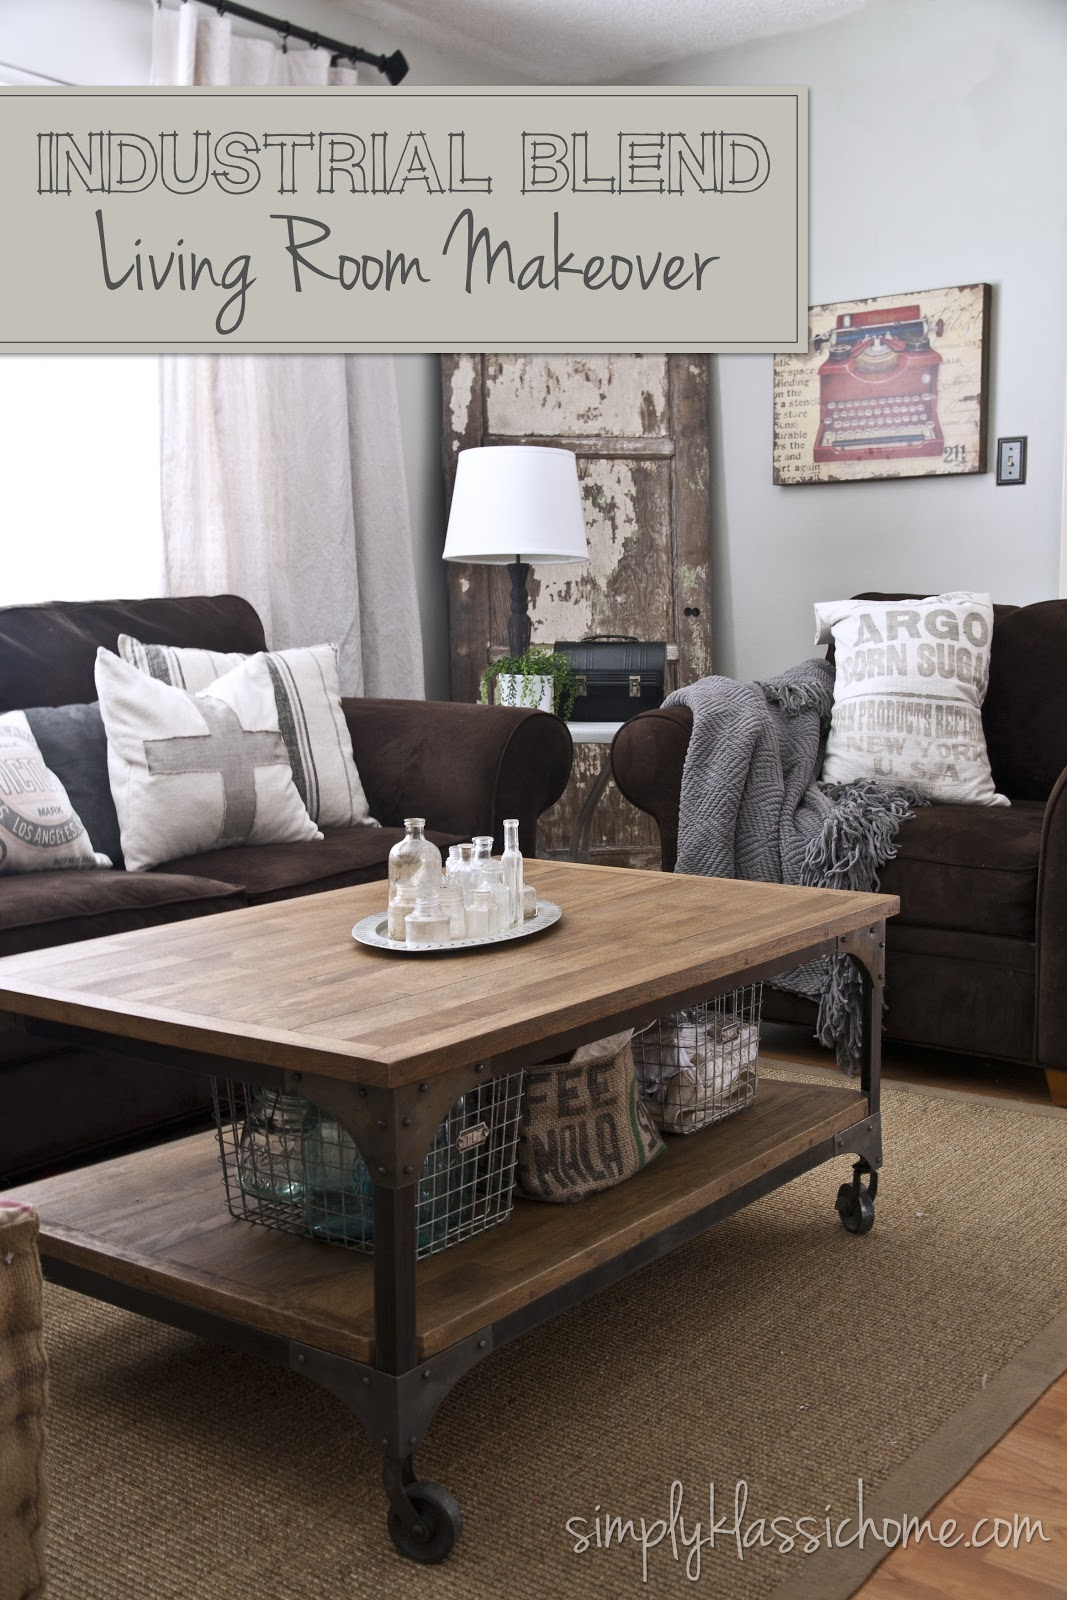 Industrial blend living room makeover reveal yellow for Industrial living room ideas